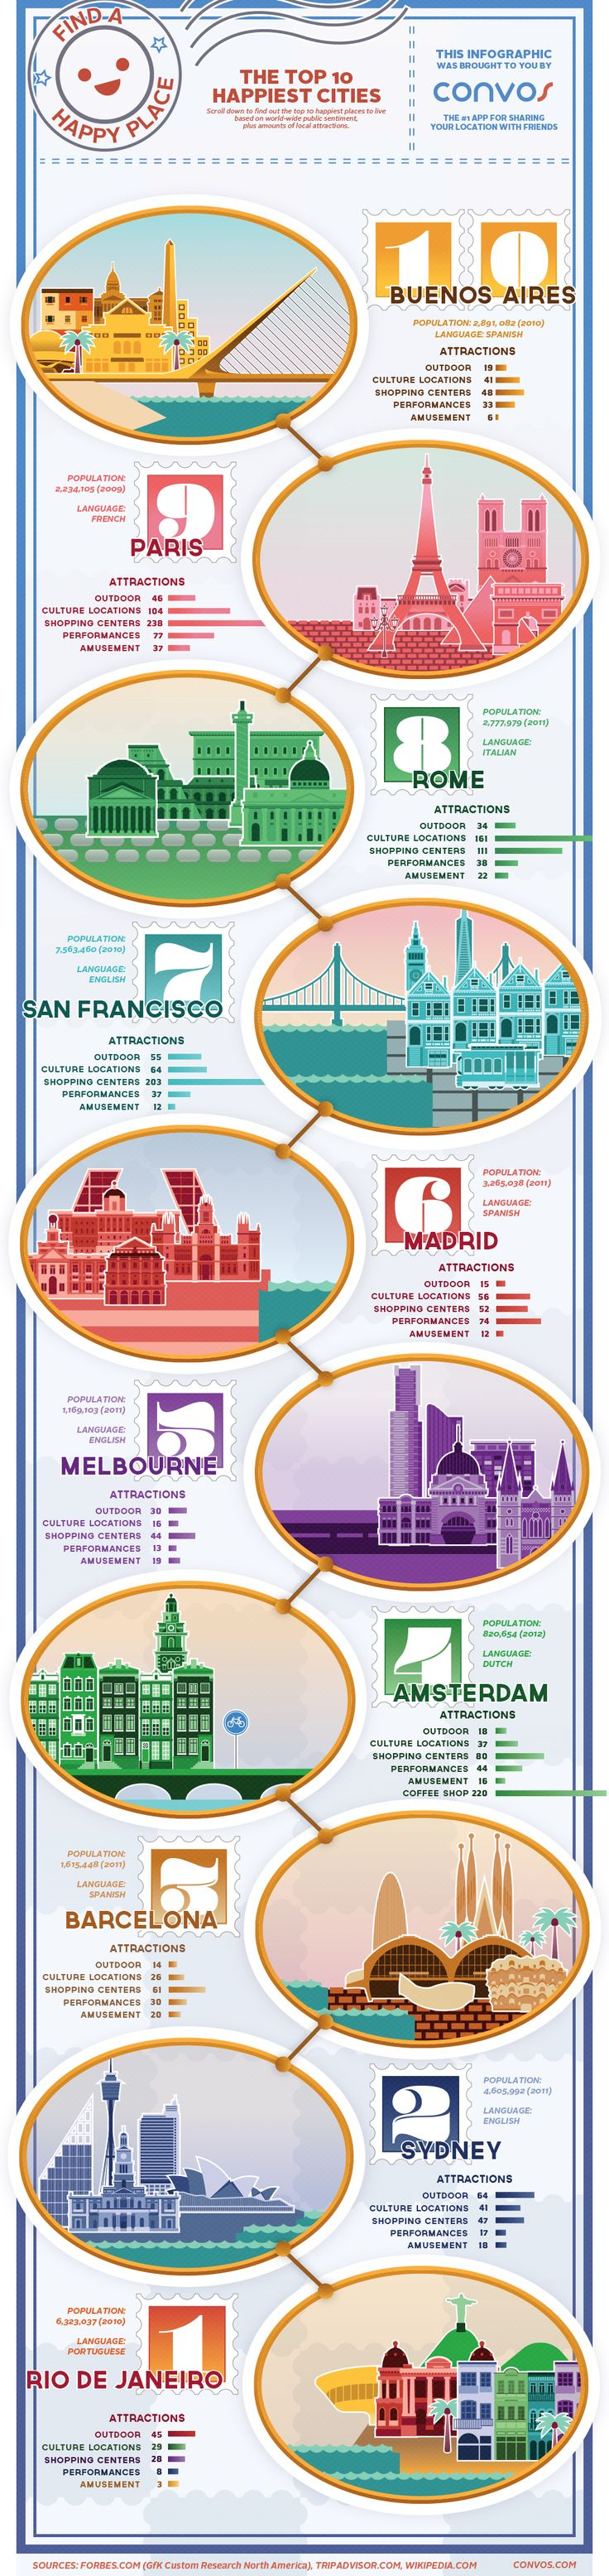 The top 10 happiest cities #infographic